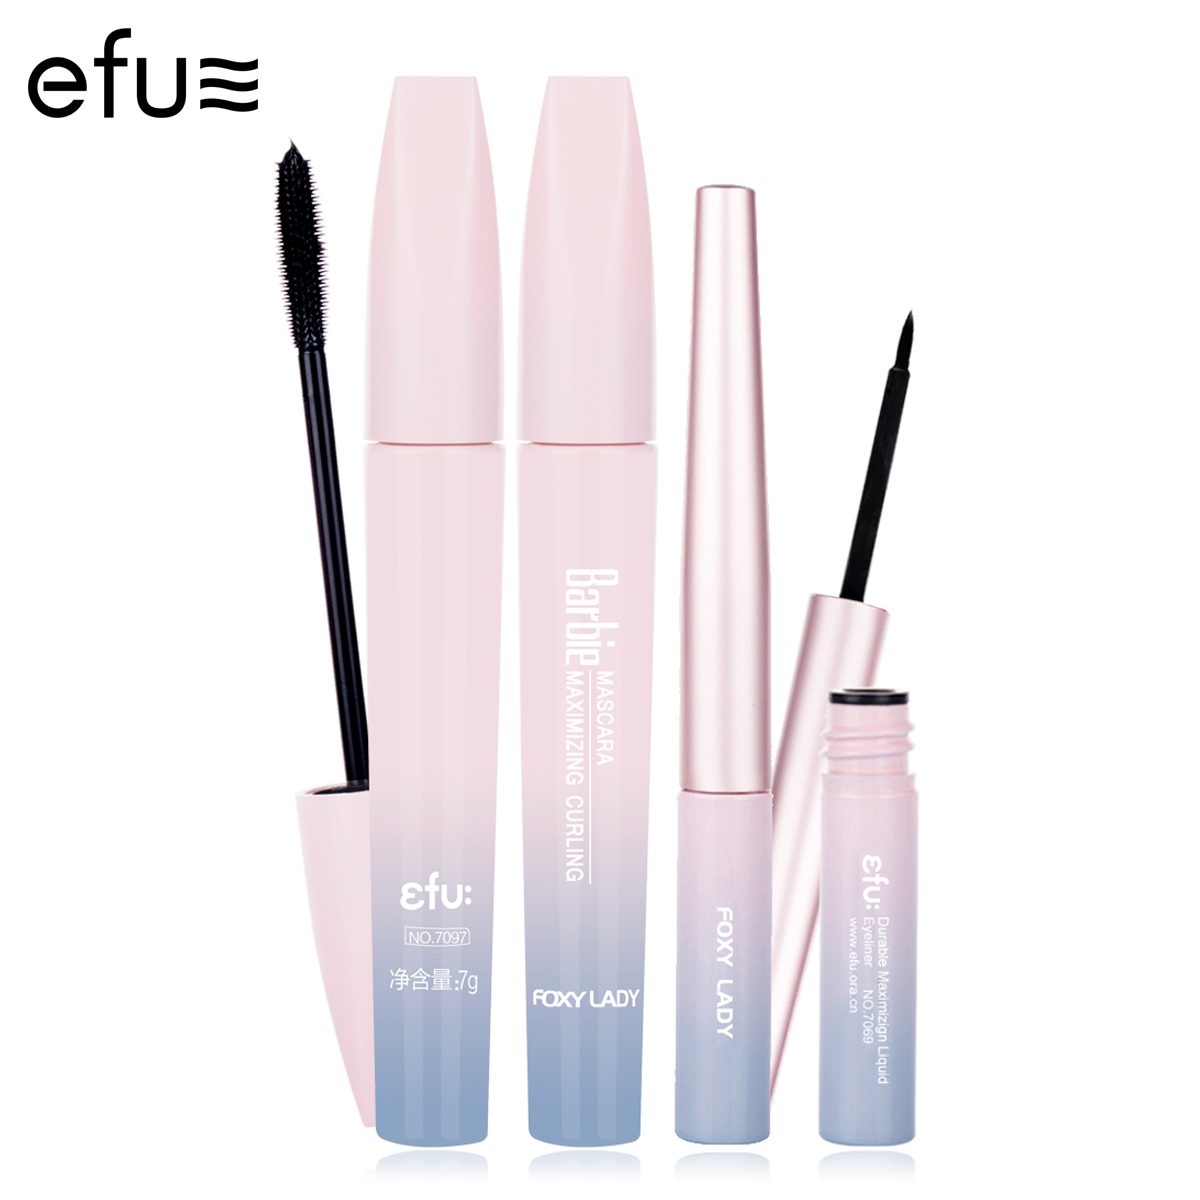 1Set =2Pcs Quick-Dry Eyeliner and Waterproof Black Mascara 7g+2.4g Brand EFU #EFUEYE002